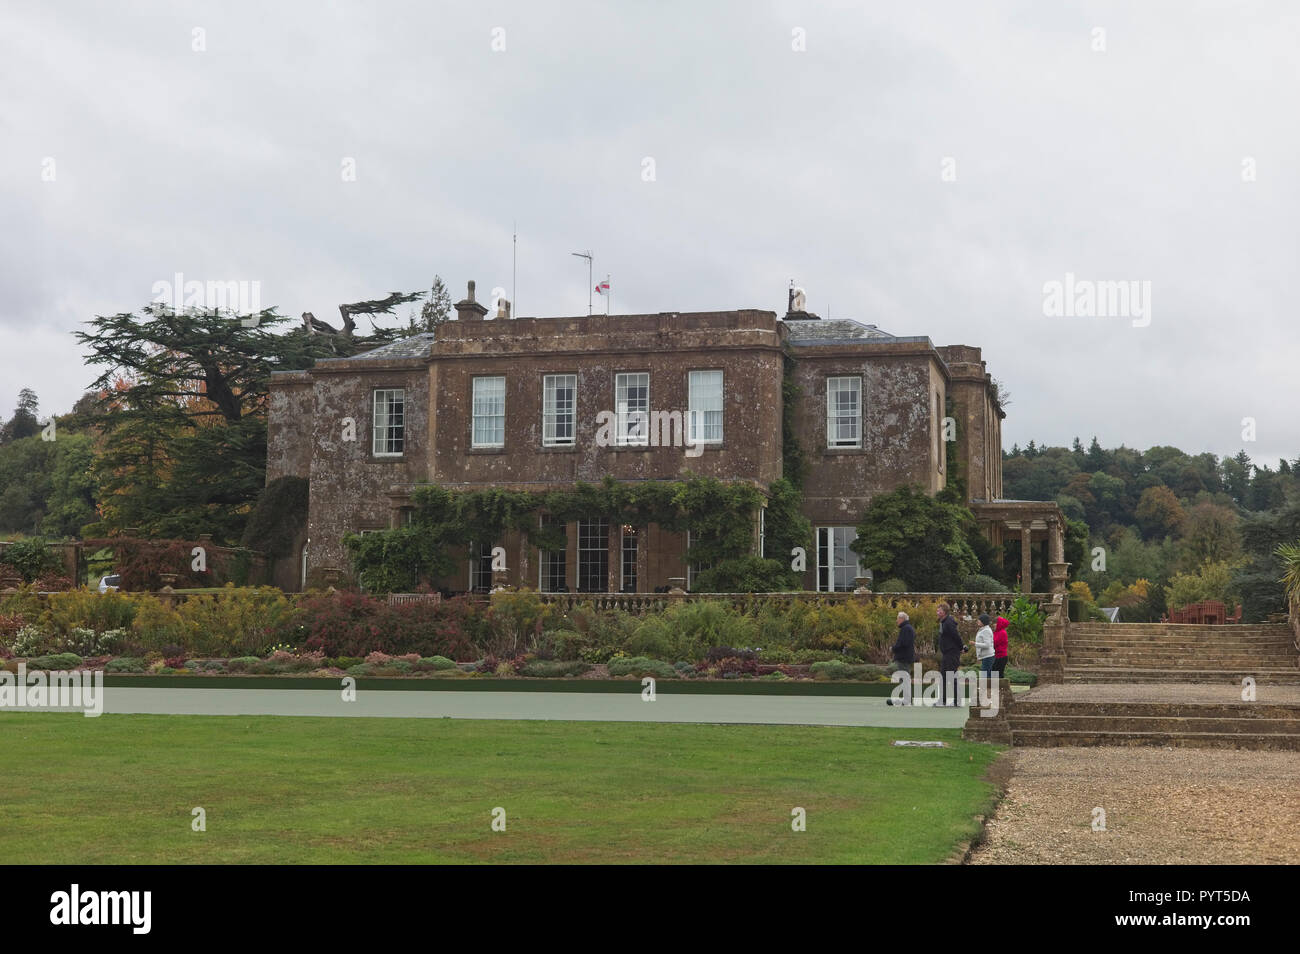 Cricket St Thomas Warner Hotel in Somerset, England. Four people playing bowls on a cold grey day - Stock Image